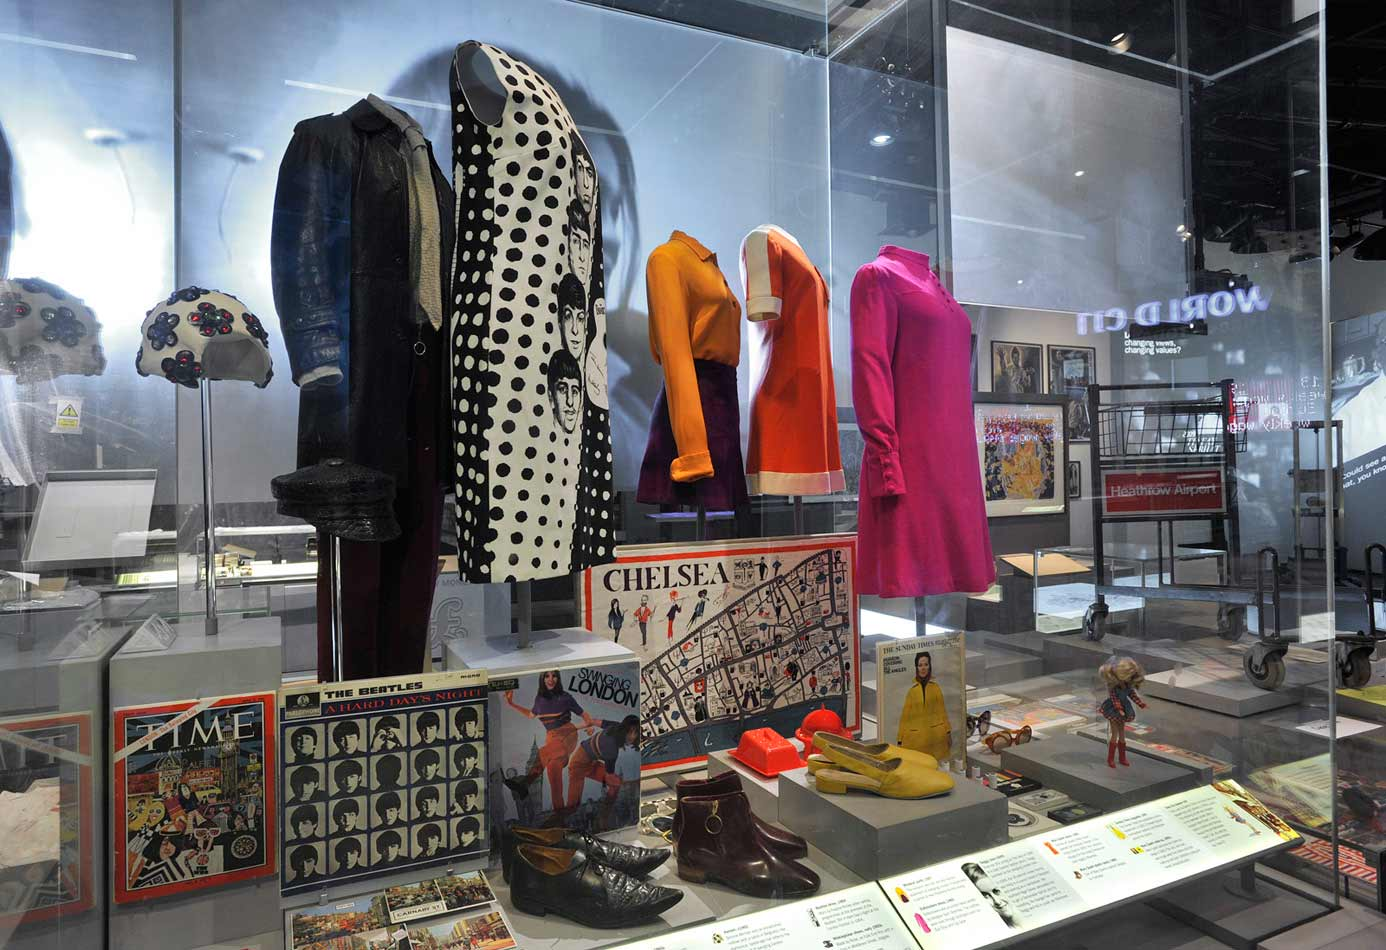 Case illustrating London fashions of the 1960s.